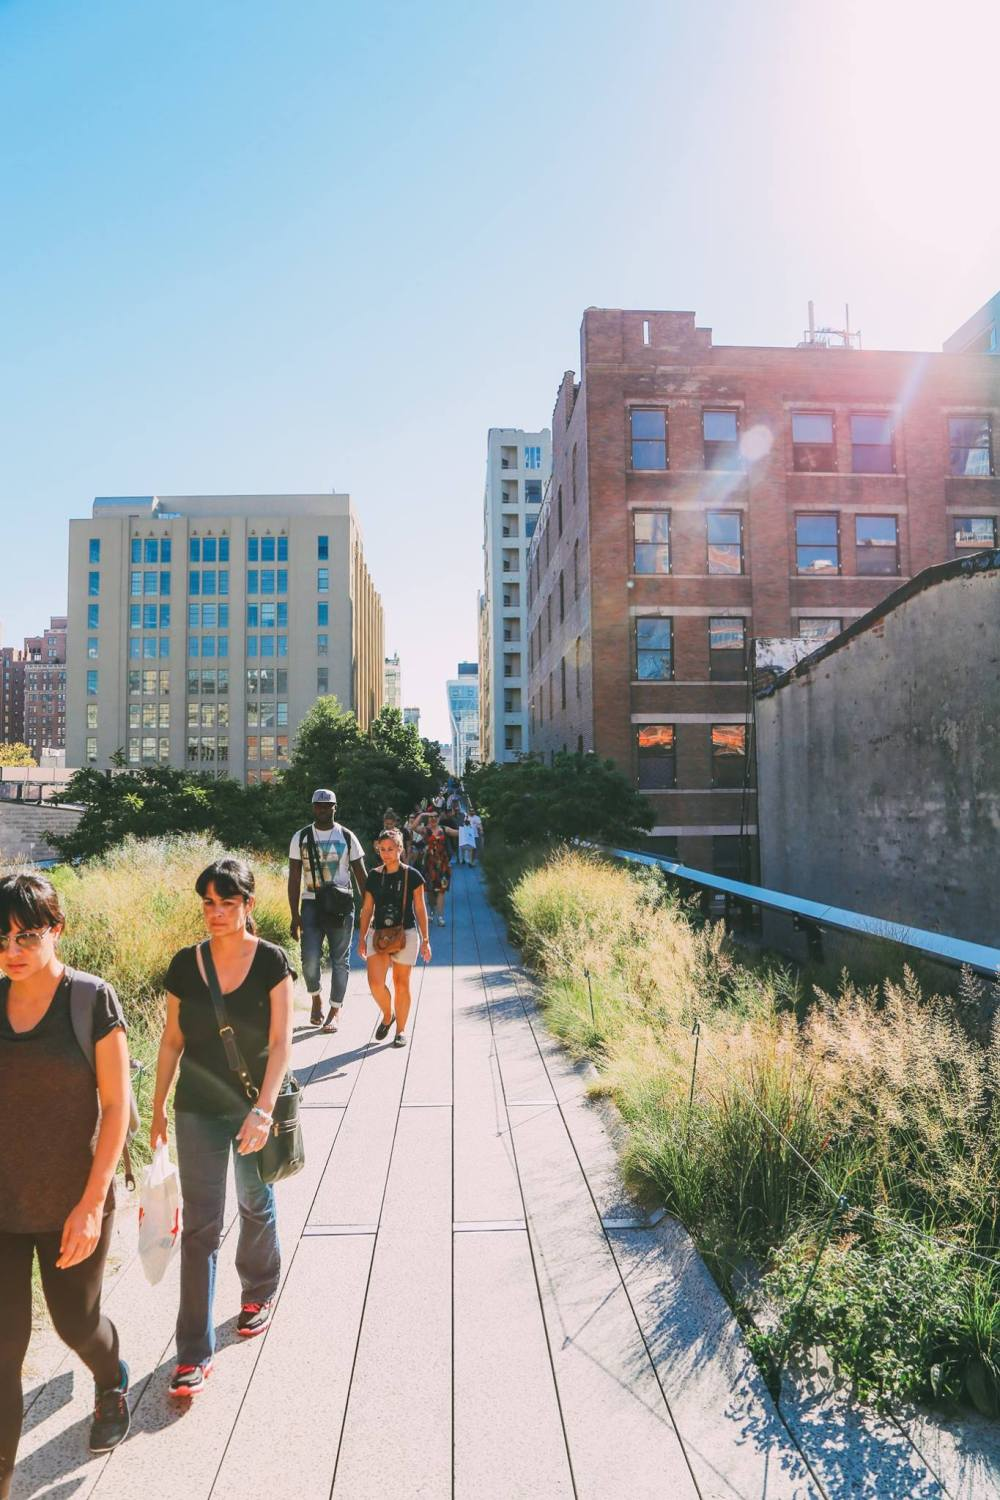 New York Diary: The High Line, Lego House And New York Fashion Week (7)